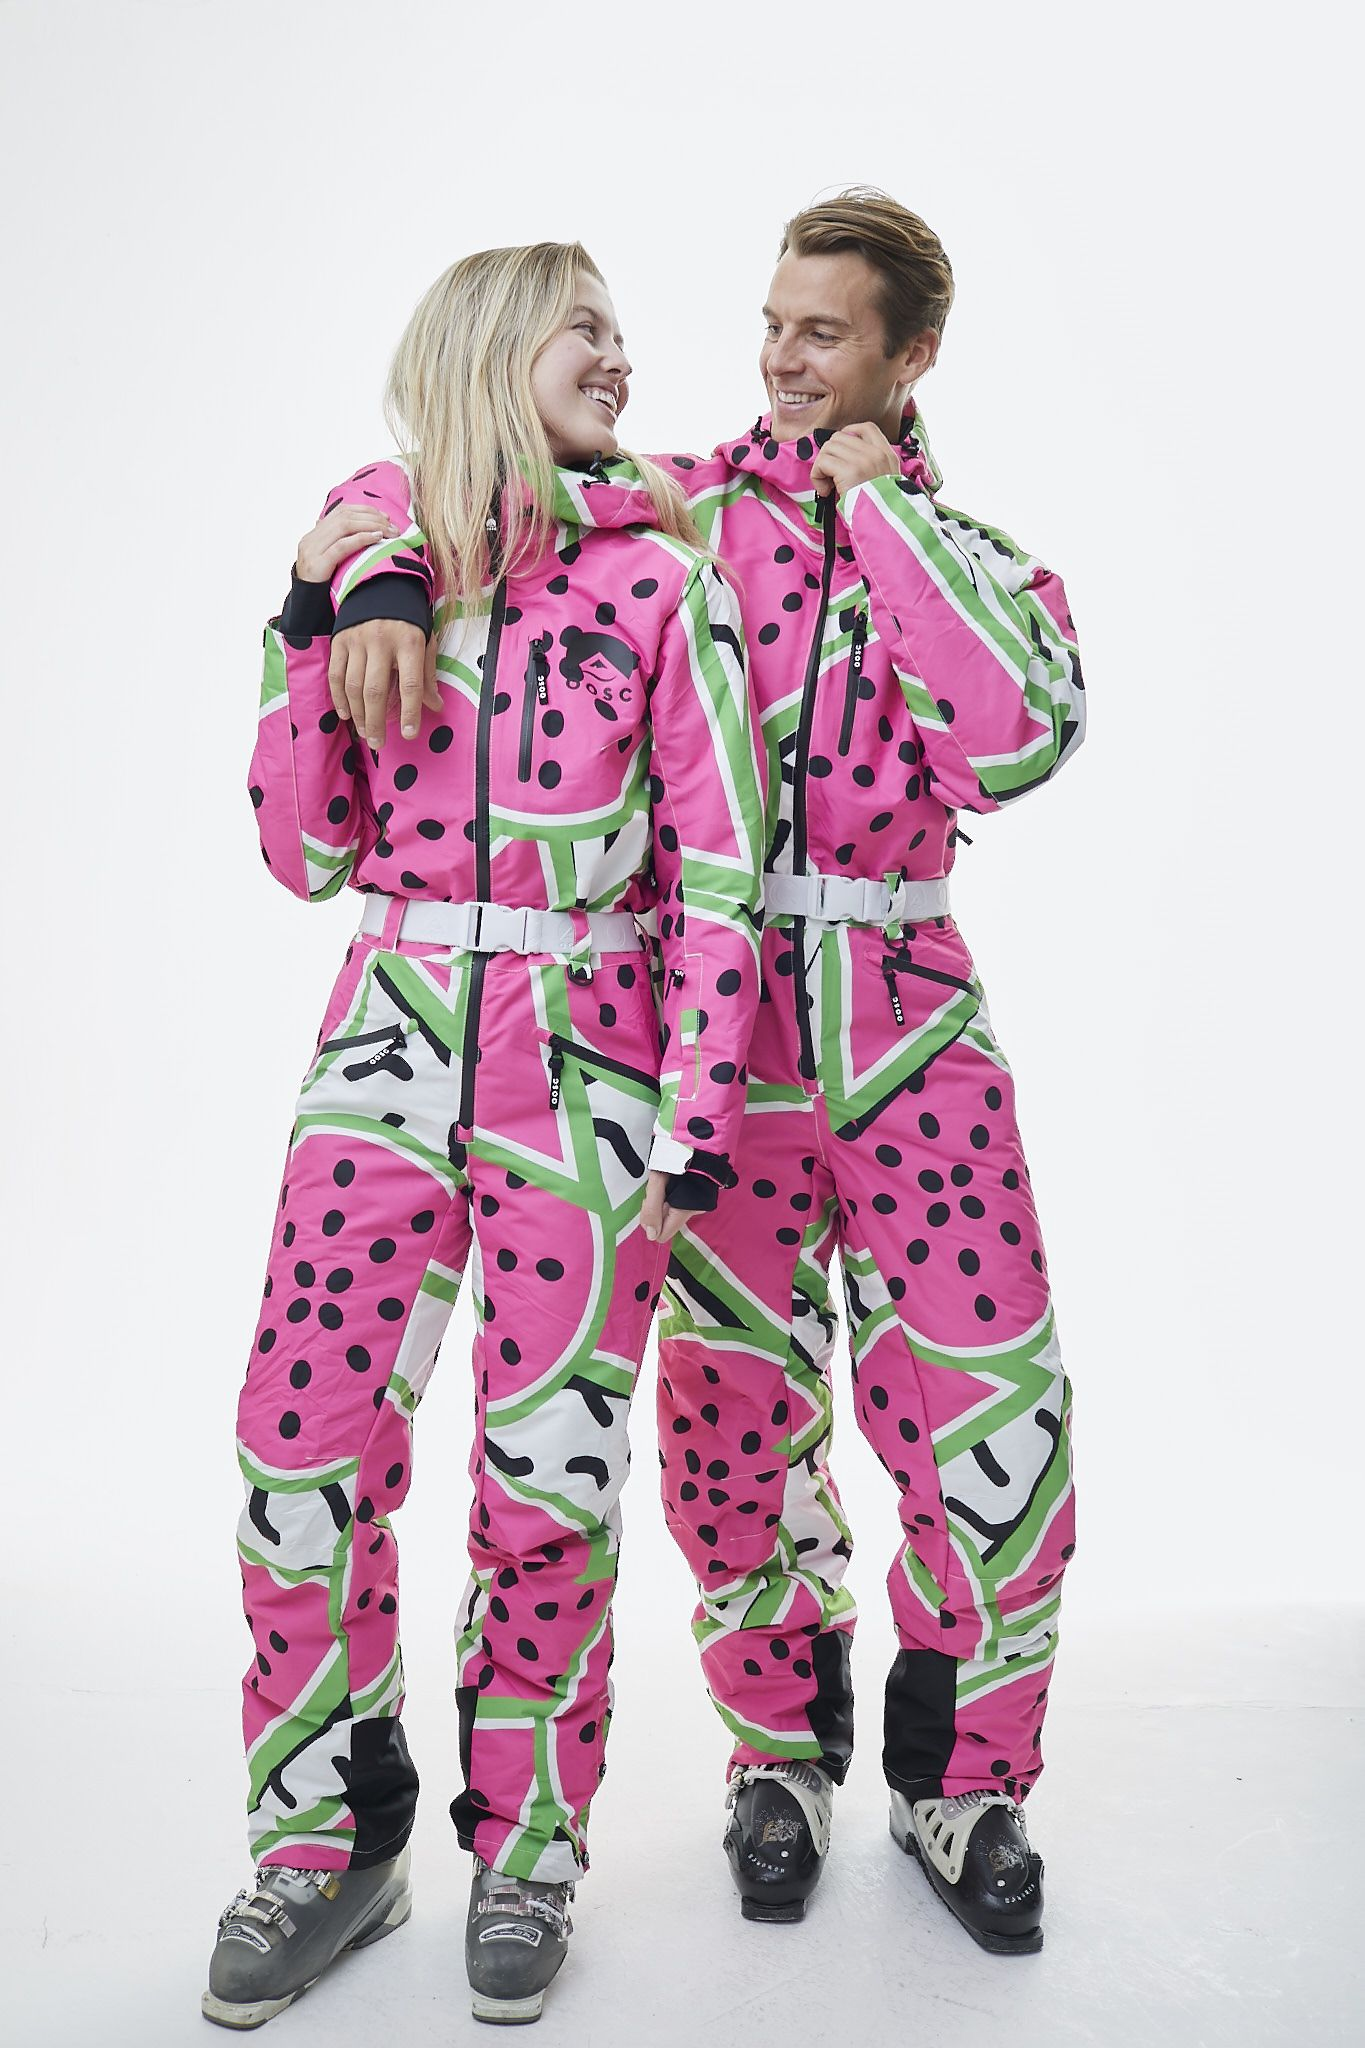 All In One Ski Suit Watermelon Oosc Clothing Clothes Ski Women Suits